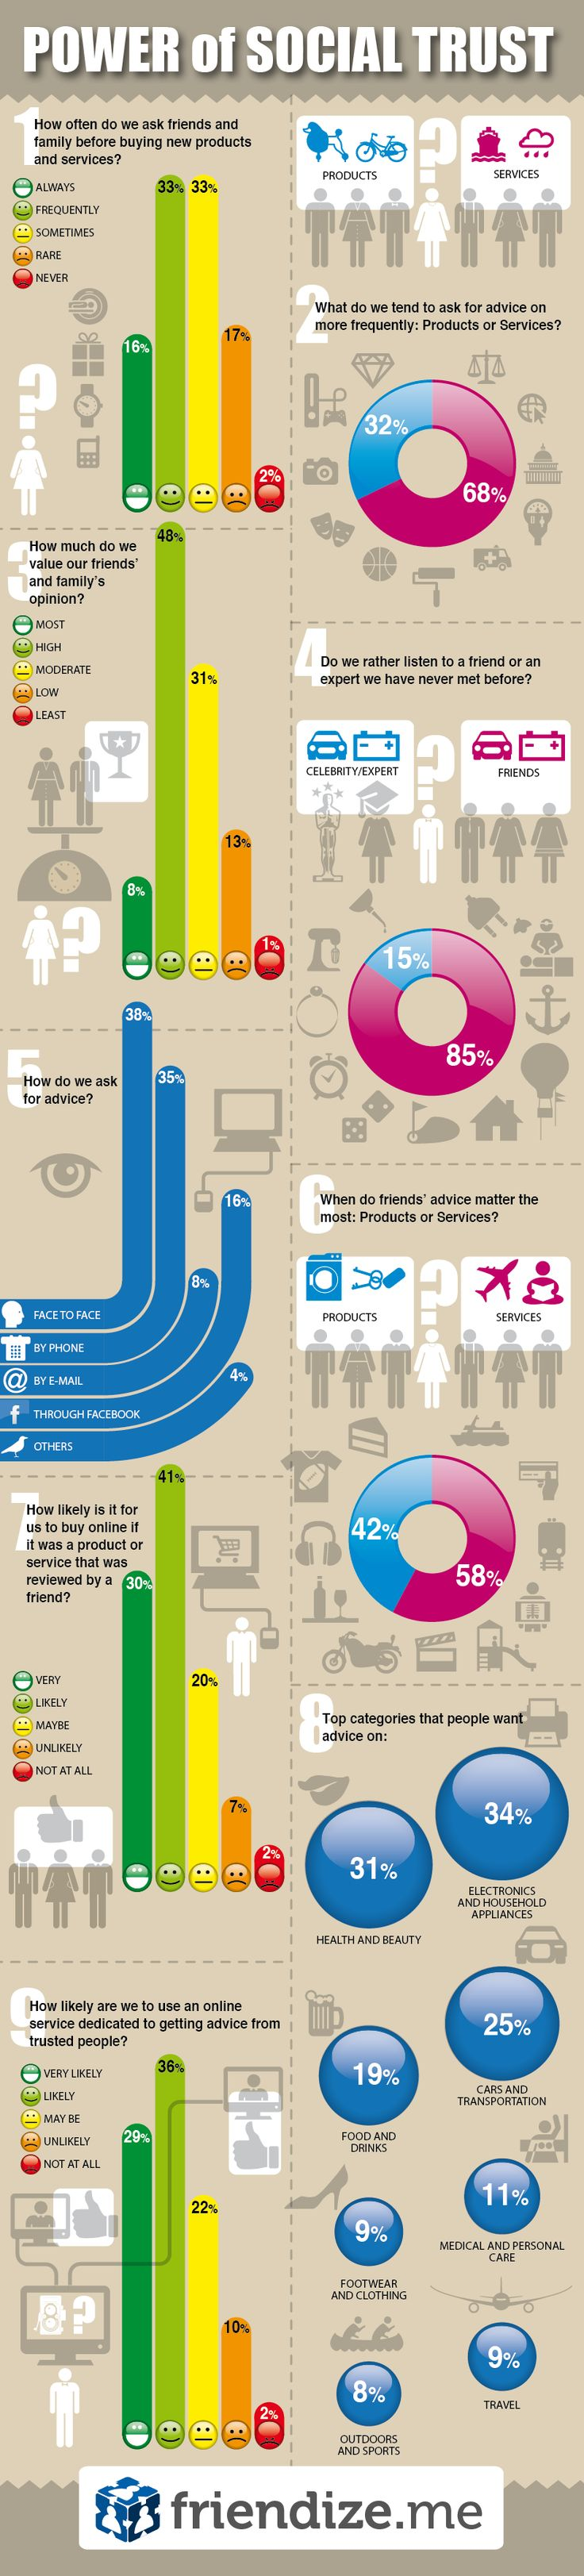 [INFOGRAPHIC] The Power of Social Trust and WOM. But where are the sources?